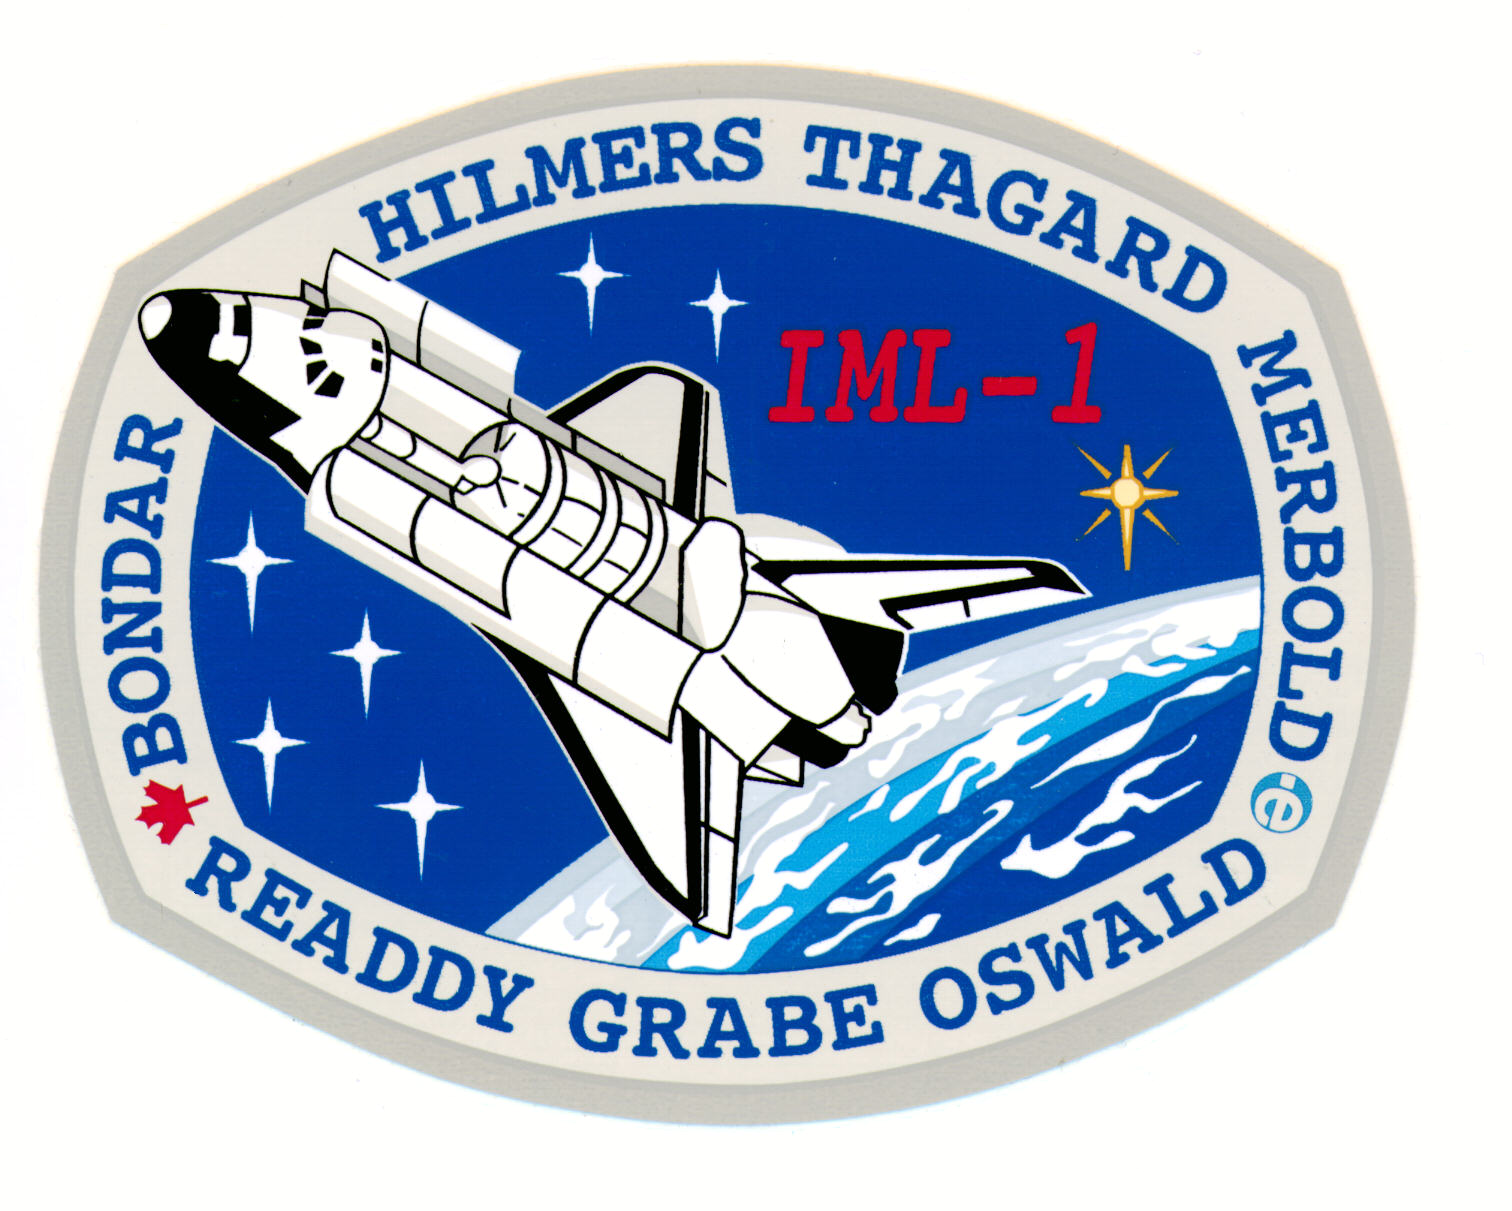 space shuttle mission badges - photo #30